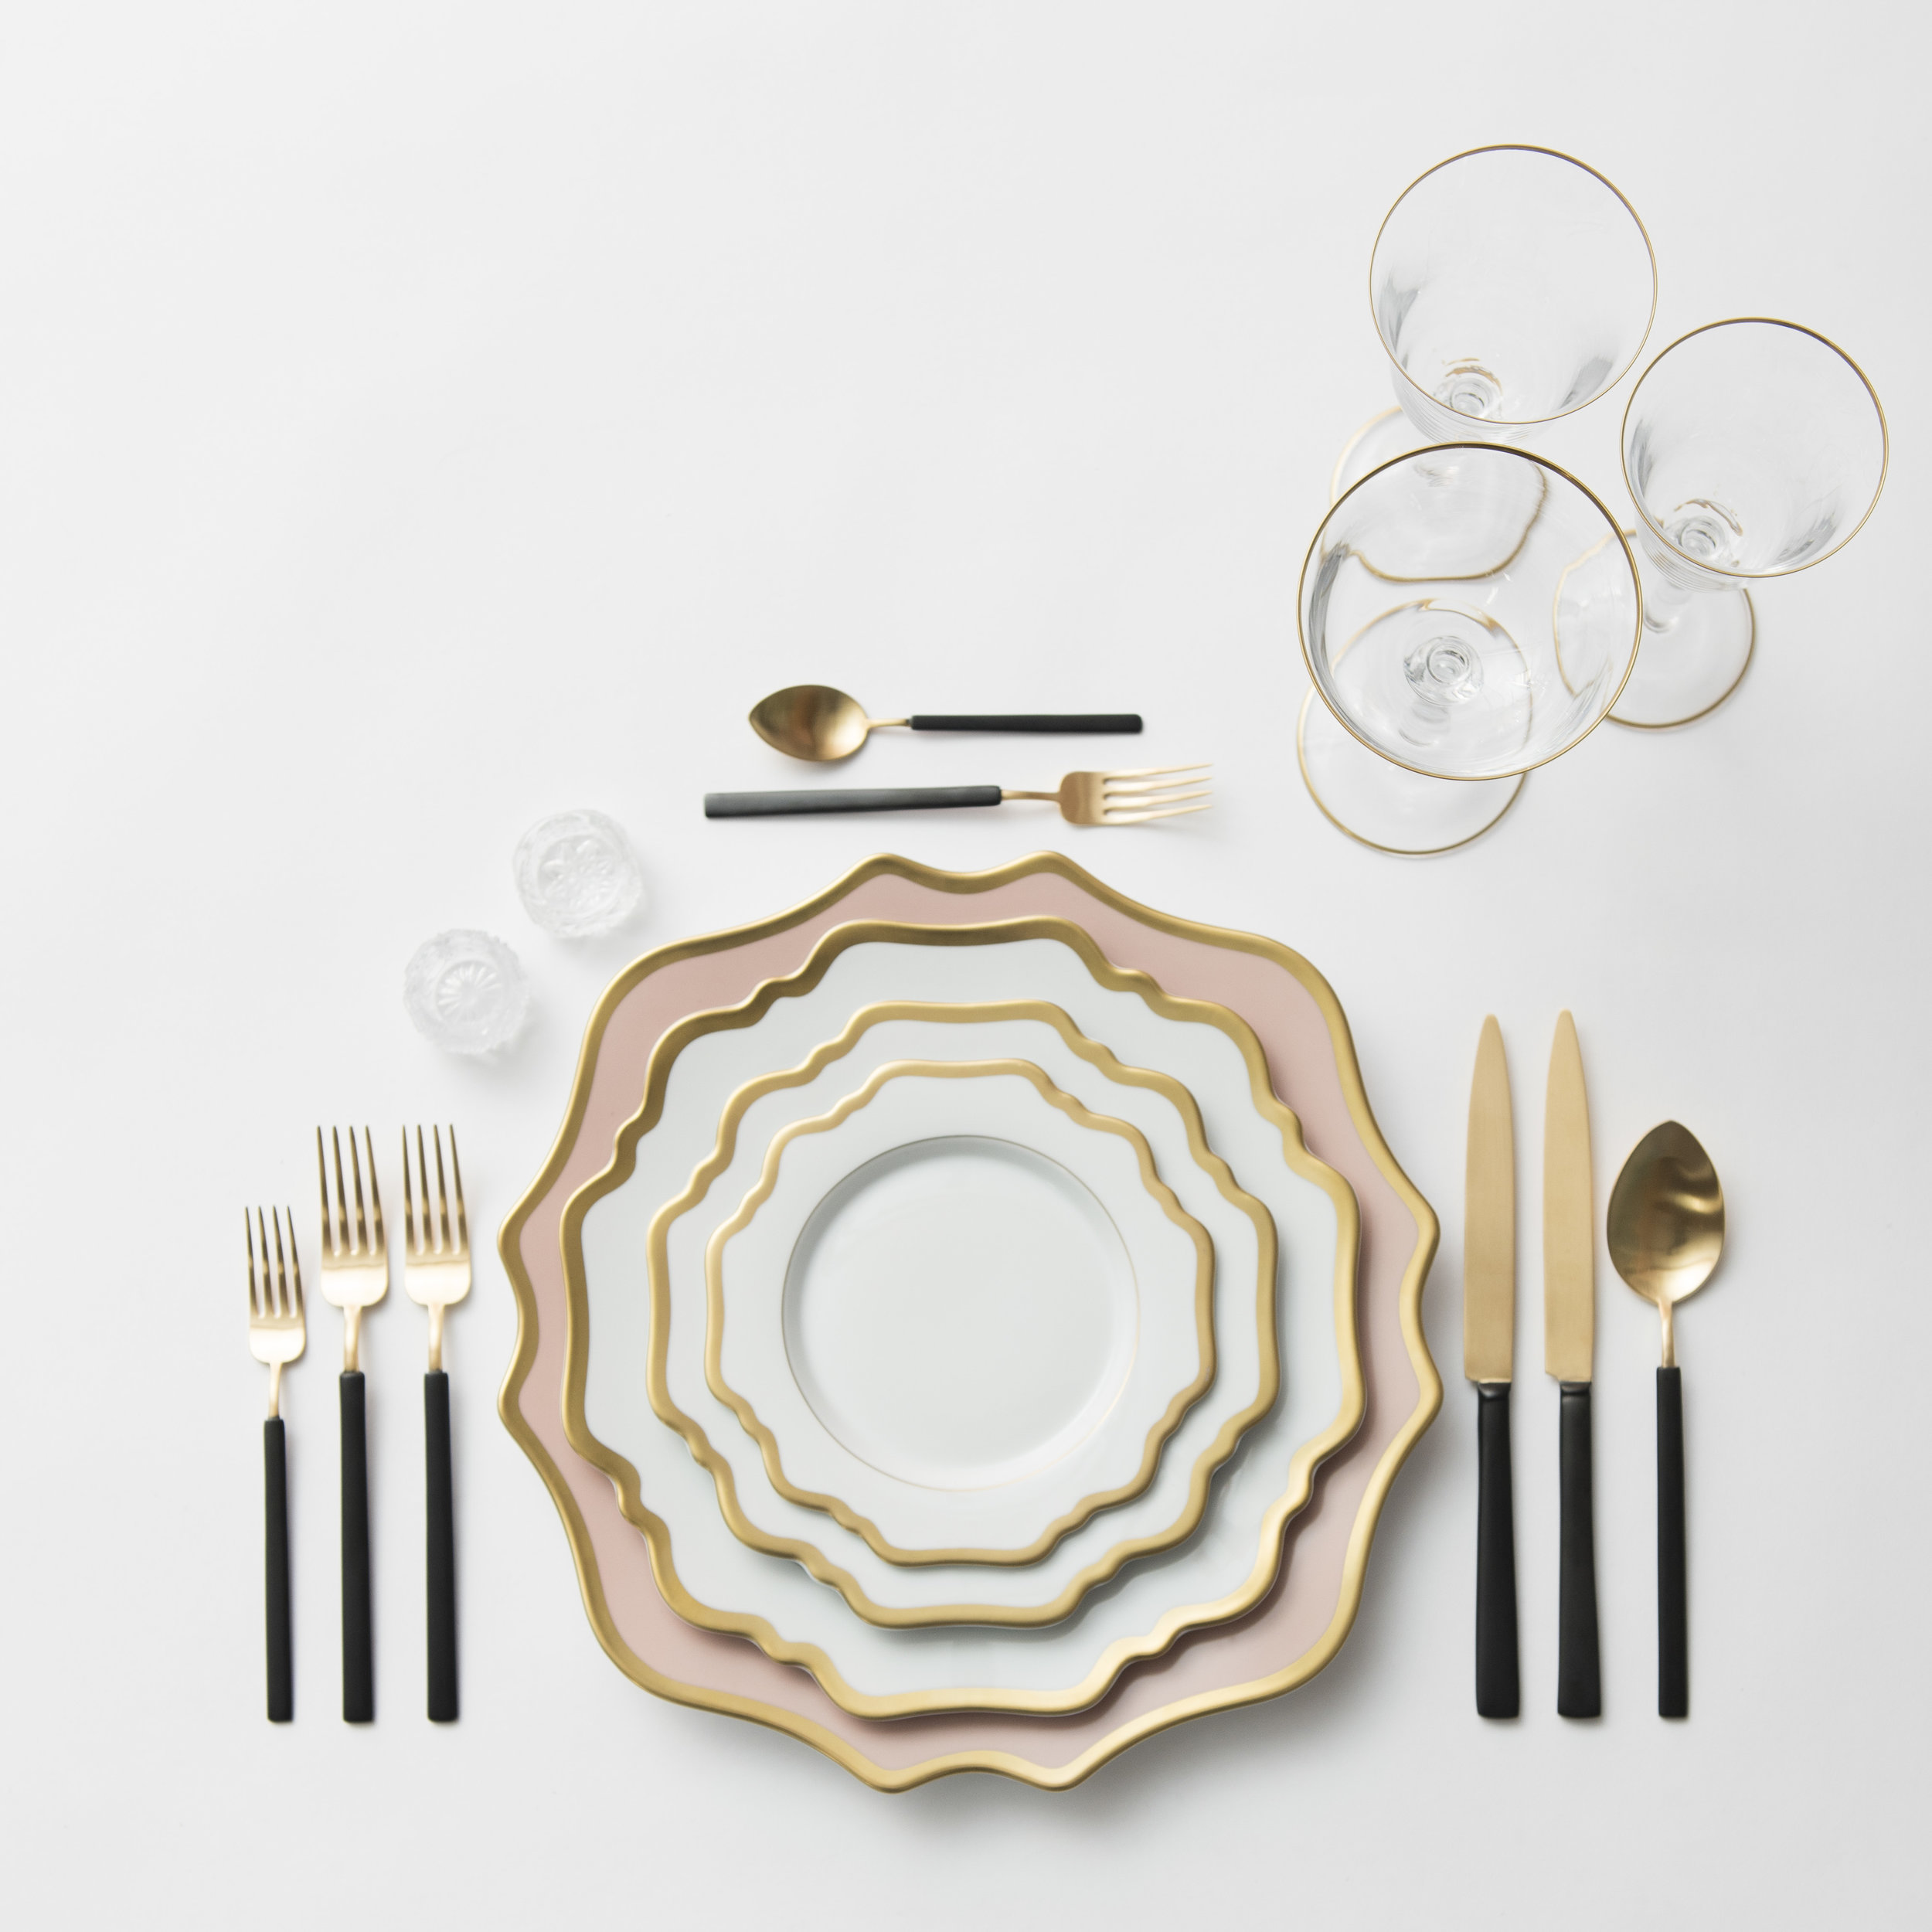 RENT: Anna Weatherley Chargers in Desert Rose/Gold + Anna Weatherley Dinnerware in White/Gold + Axel Flatware in Matte 24k Gold/Black + Chloe 24k Gold Rimmed Stemware + Antique Crystal Salt Cellars  SHOP: Anna Weatherley Dinnerware in White/Gold + Chloe 24k Gold Rimmed Stemware